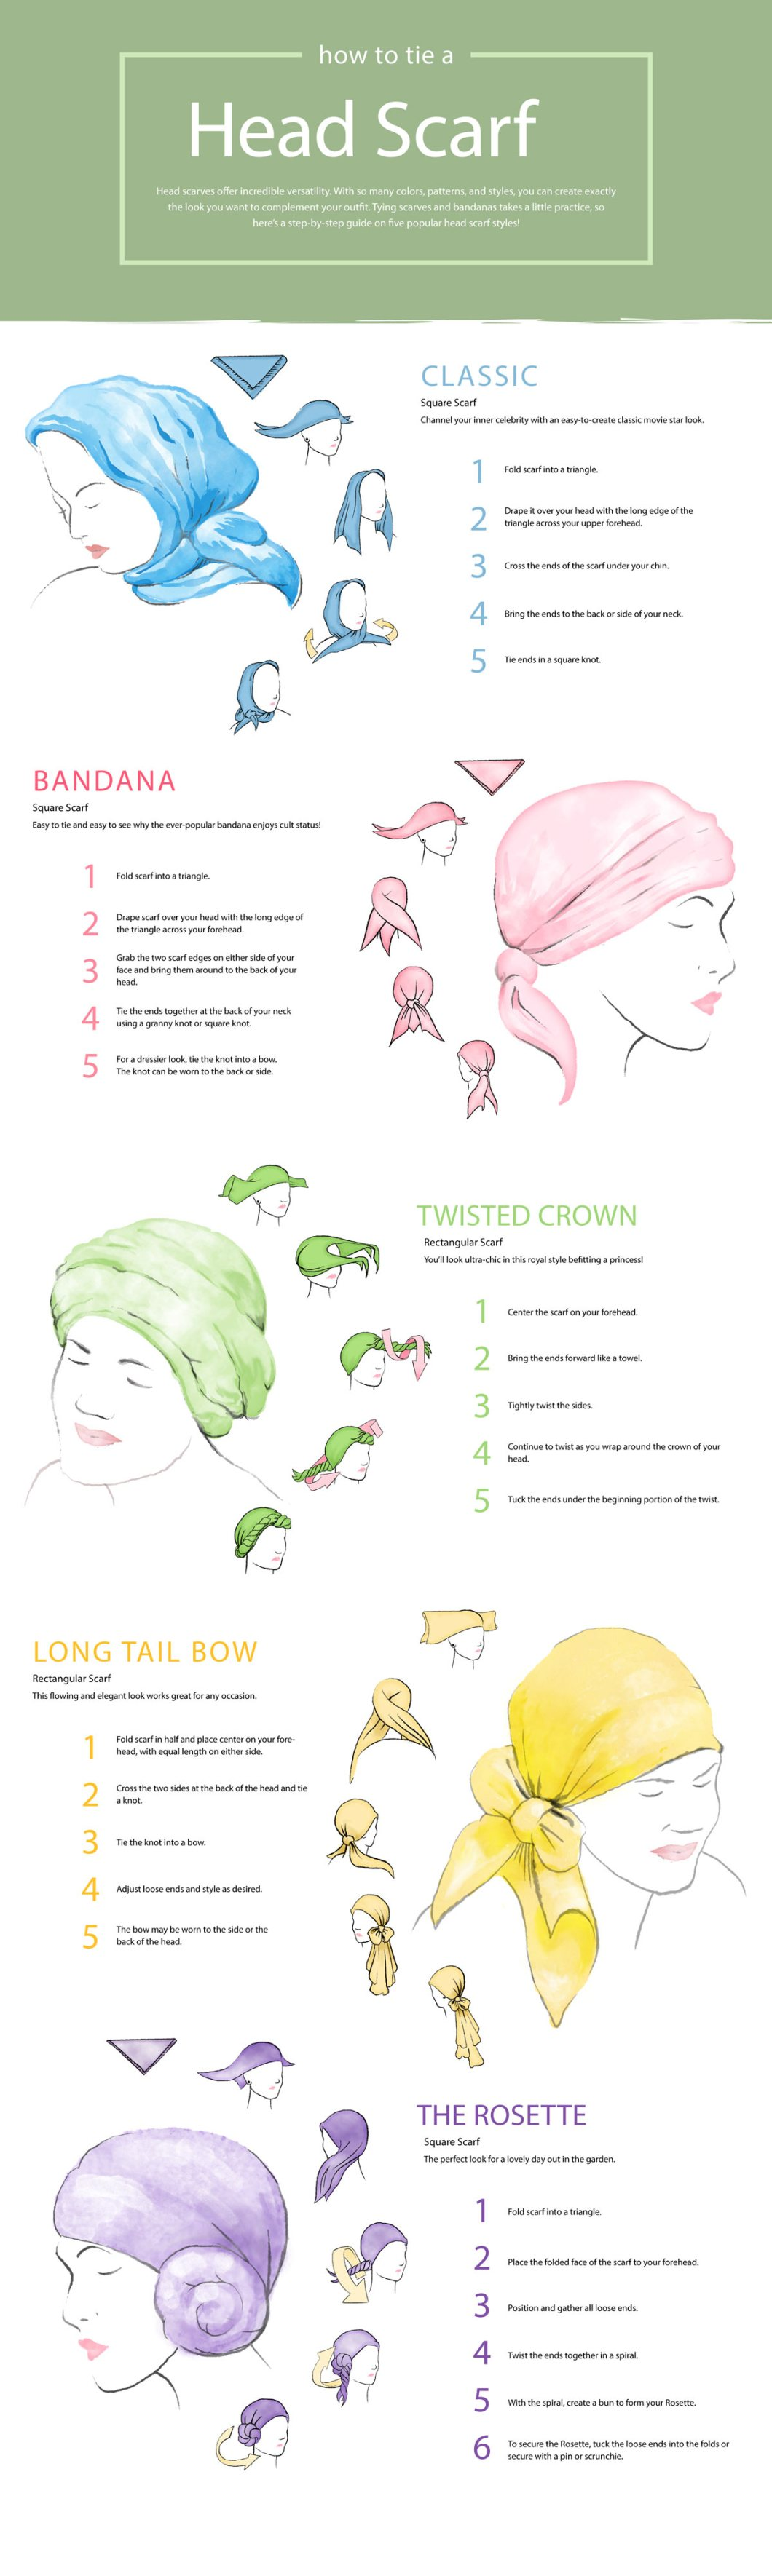 A Guide To Tying A Head Scarf - Infographic